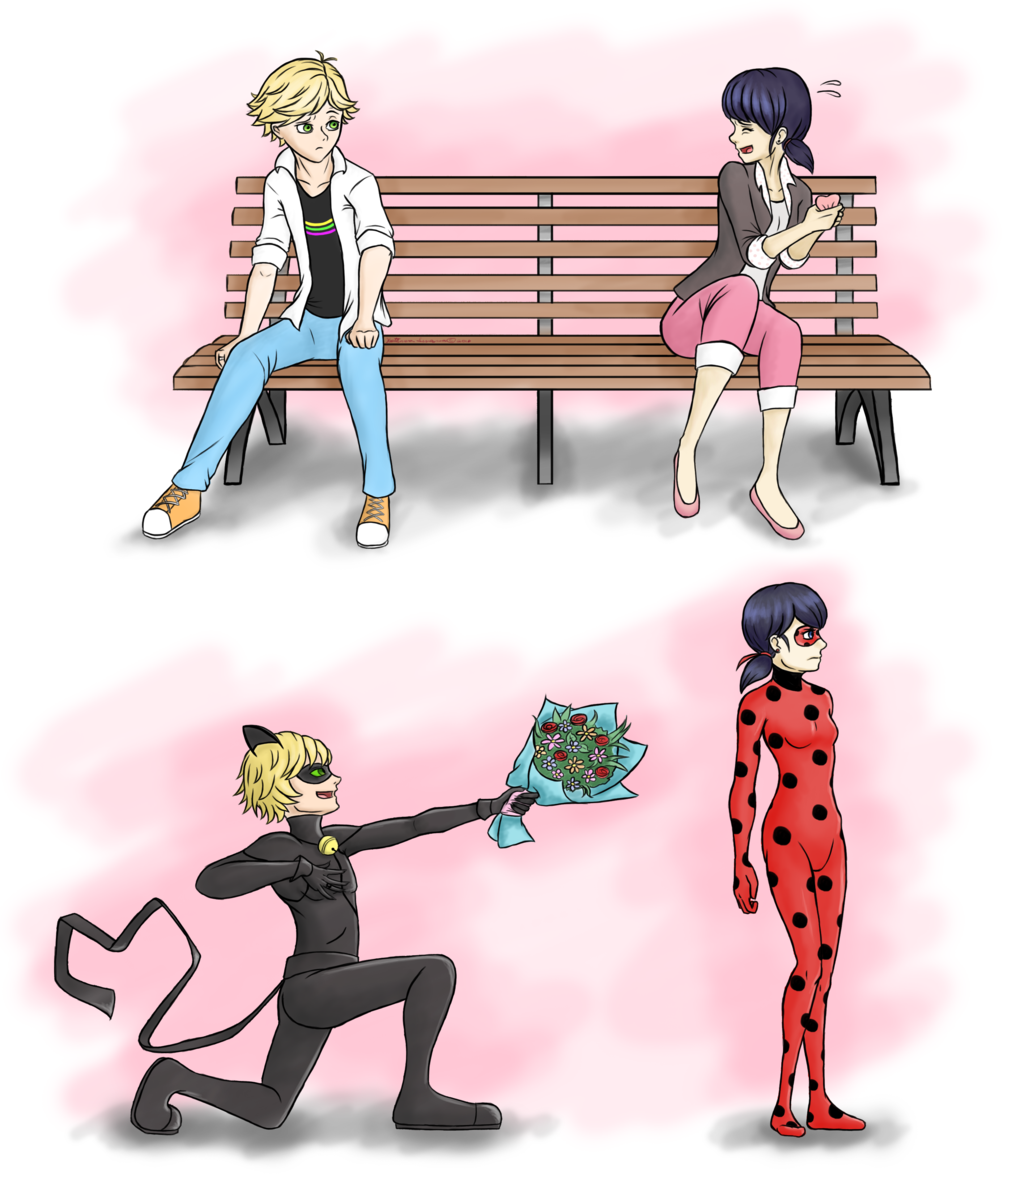 Marinette and Adrien - Chat Noir and Ladybug